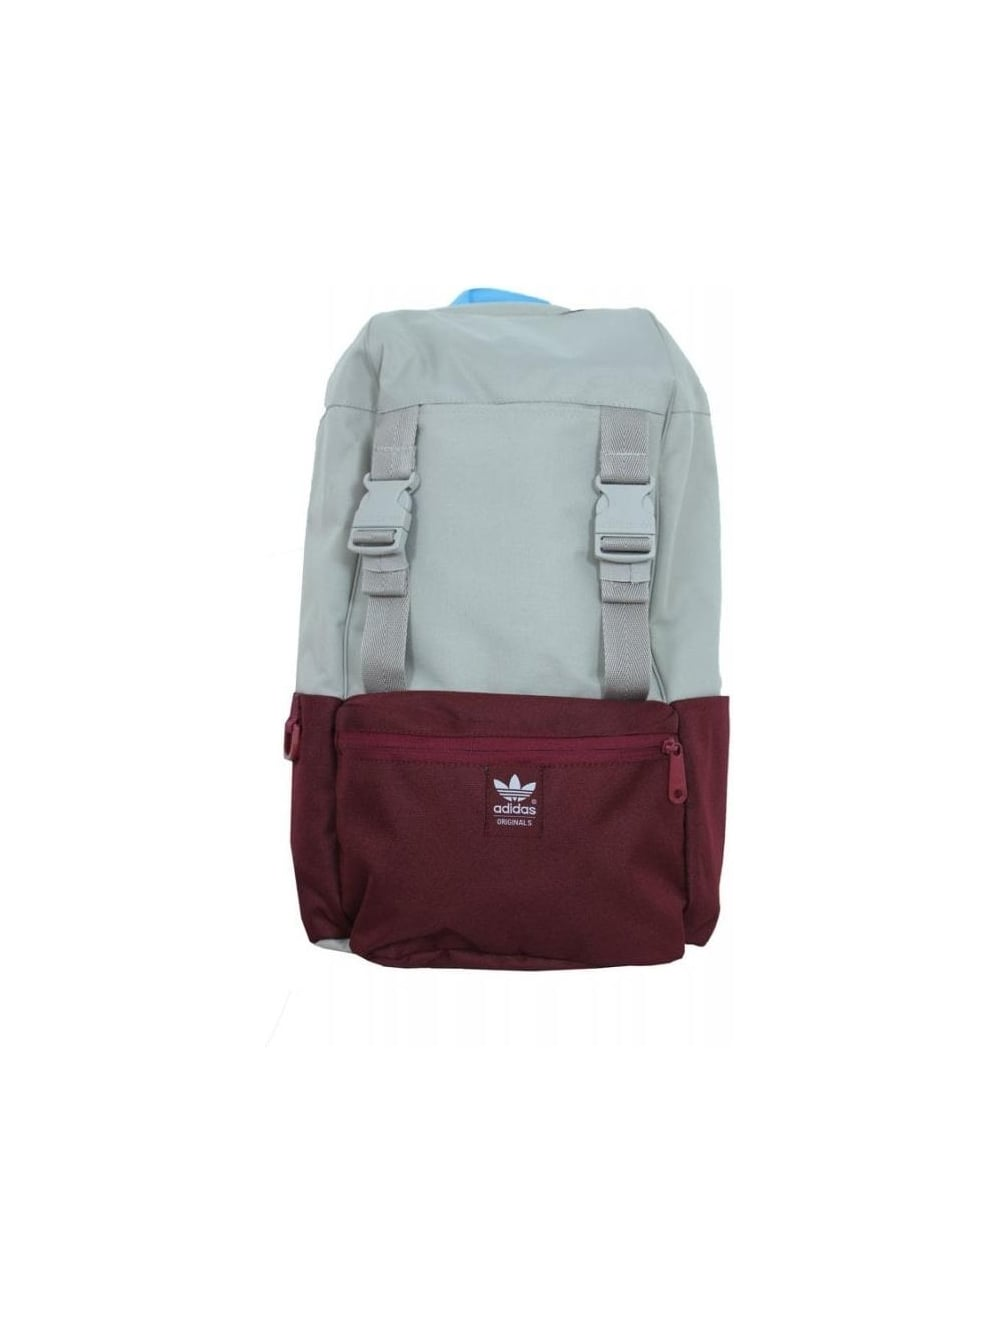 Adidas Camous Backpack in Light Brown - Northern Threads 5e0179aa0c42e